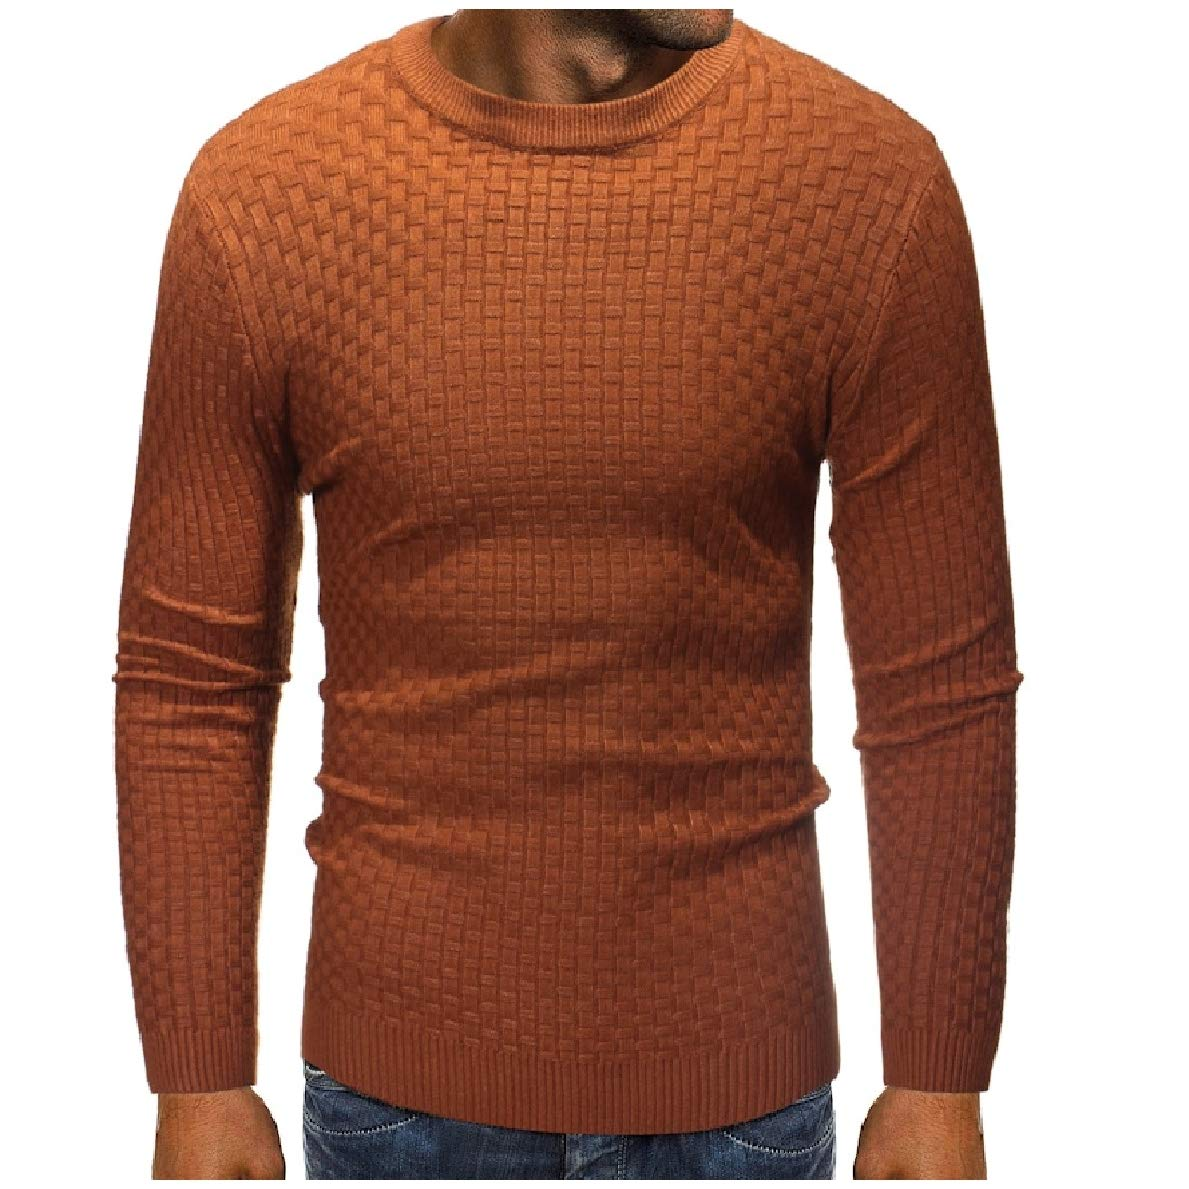 WillingStart Mens Pullover Crewneck Knitwear Pure Stretchy Tops Long Sleeve Sweaters